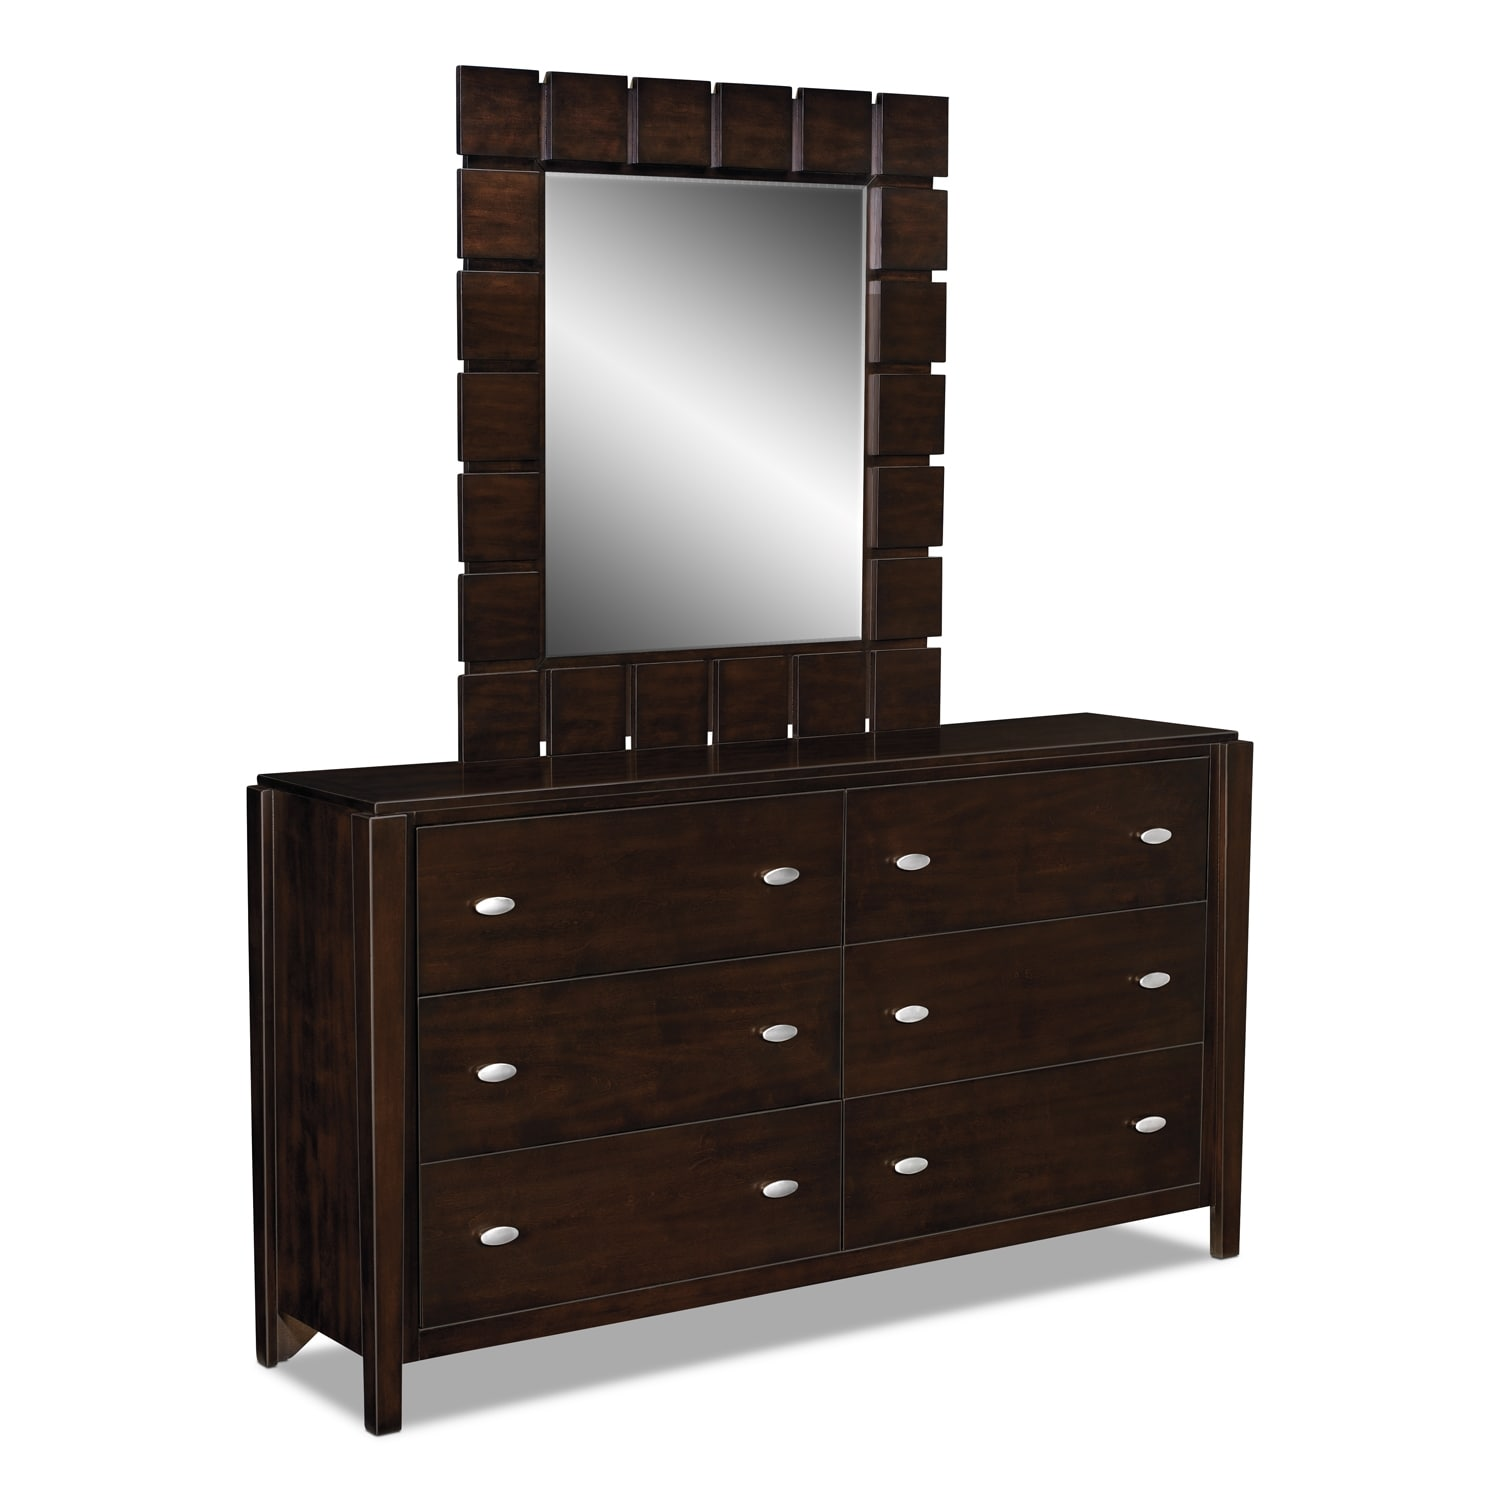 Bedroom Furniture - Mosaic Dresser and Mirror - Dark Brown